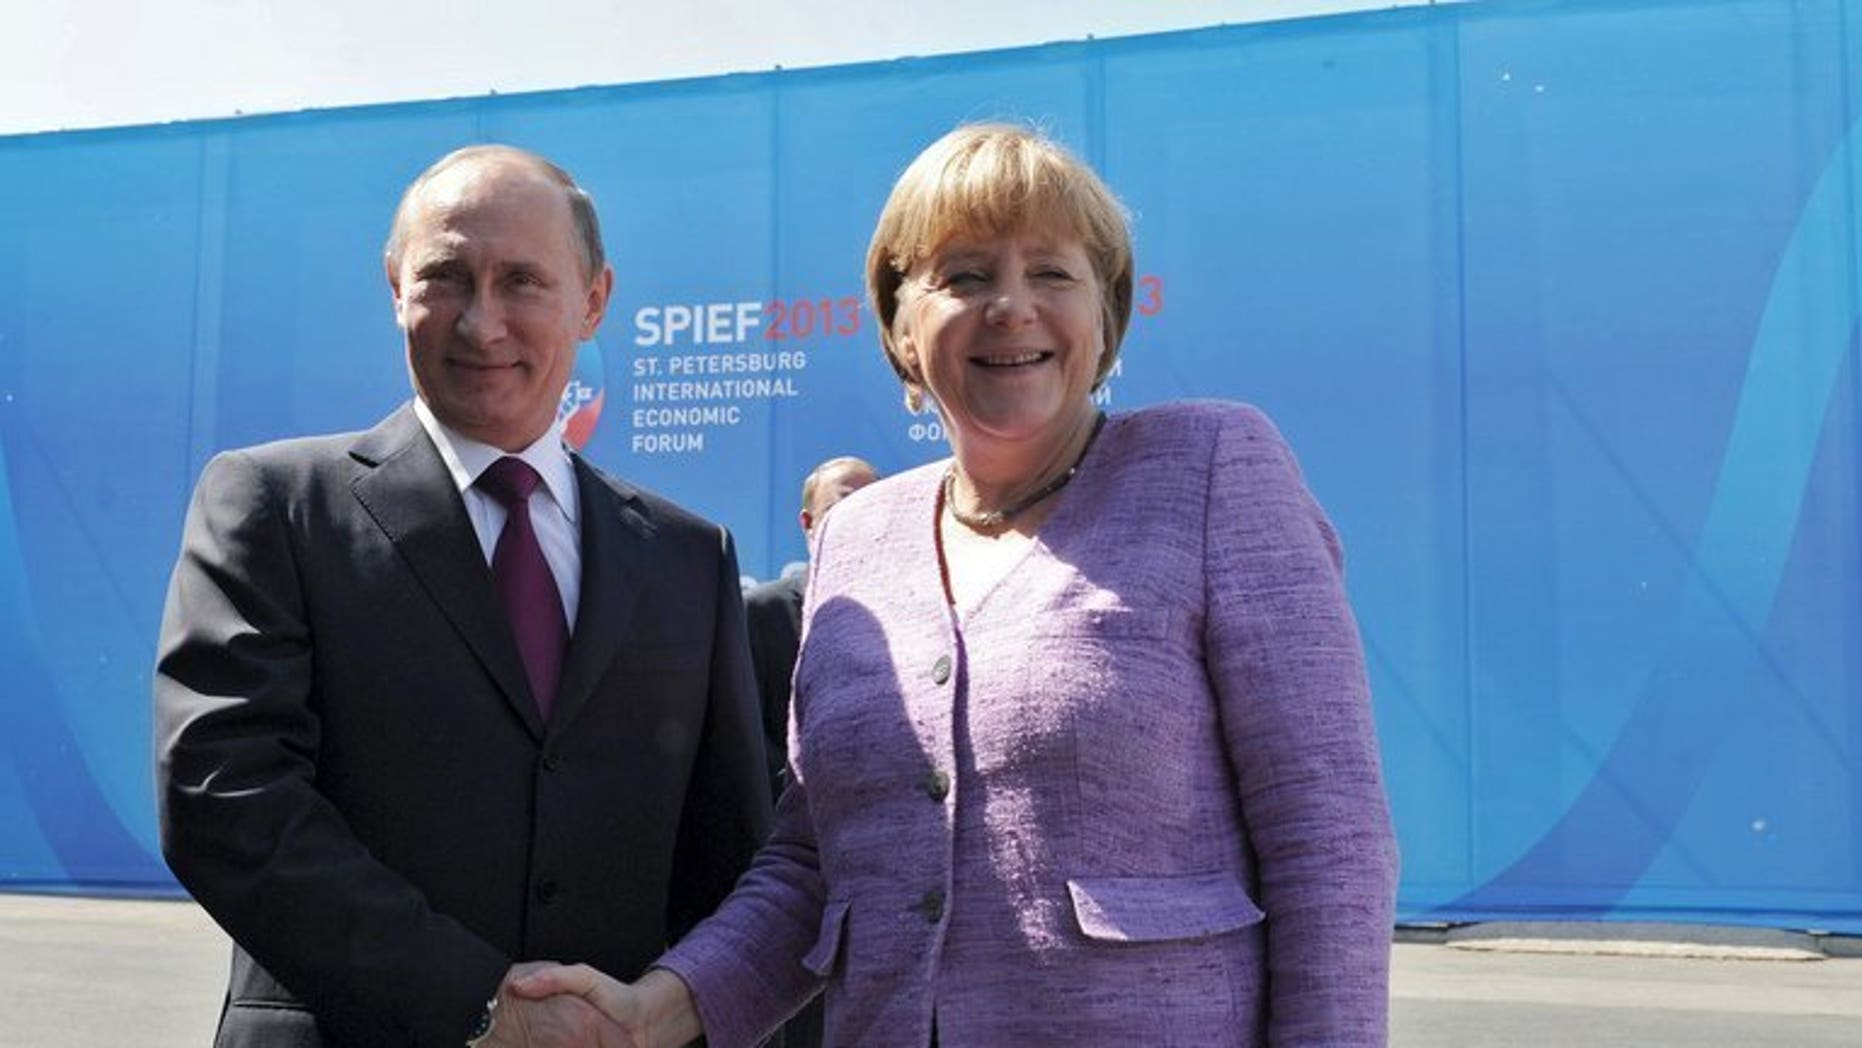 Russia's President Vladimir Putin (L) and Germany's Chancellor Angela Merkel meet during an International Economic Forum in St Petersburg, on June 21, 2013. Putin and Merkel on Friday announced that they would both attend the opening of a Saint Petersburg exhibition that includes treasures taken by the Red Army at the end of World War II.